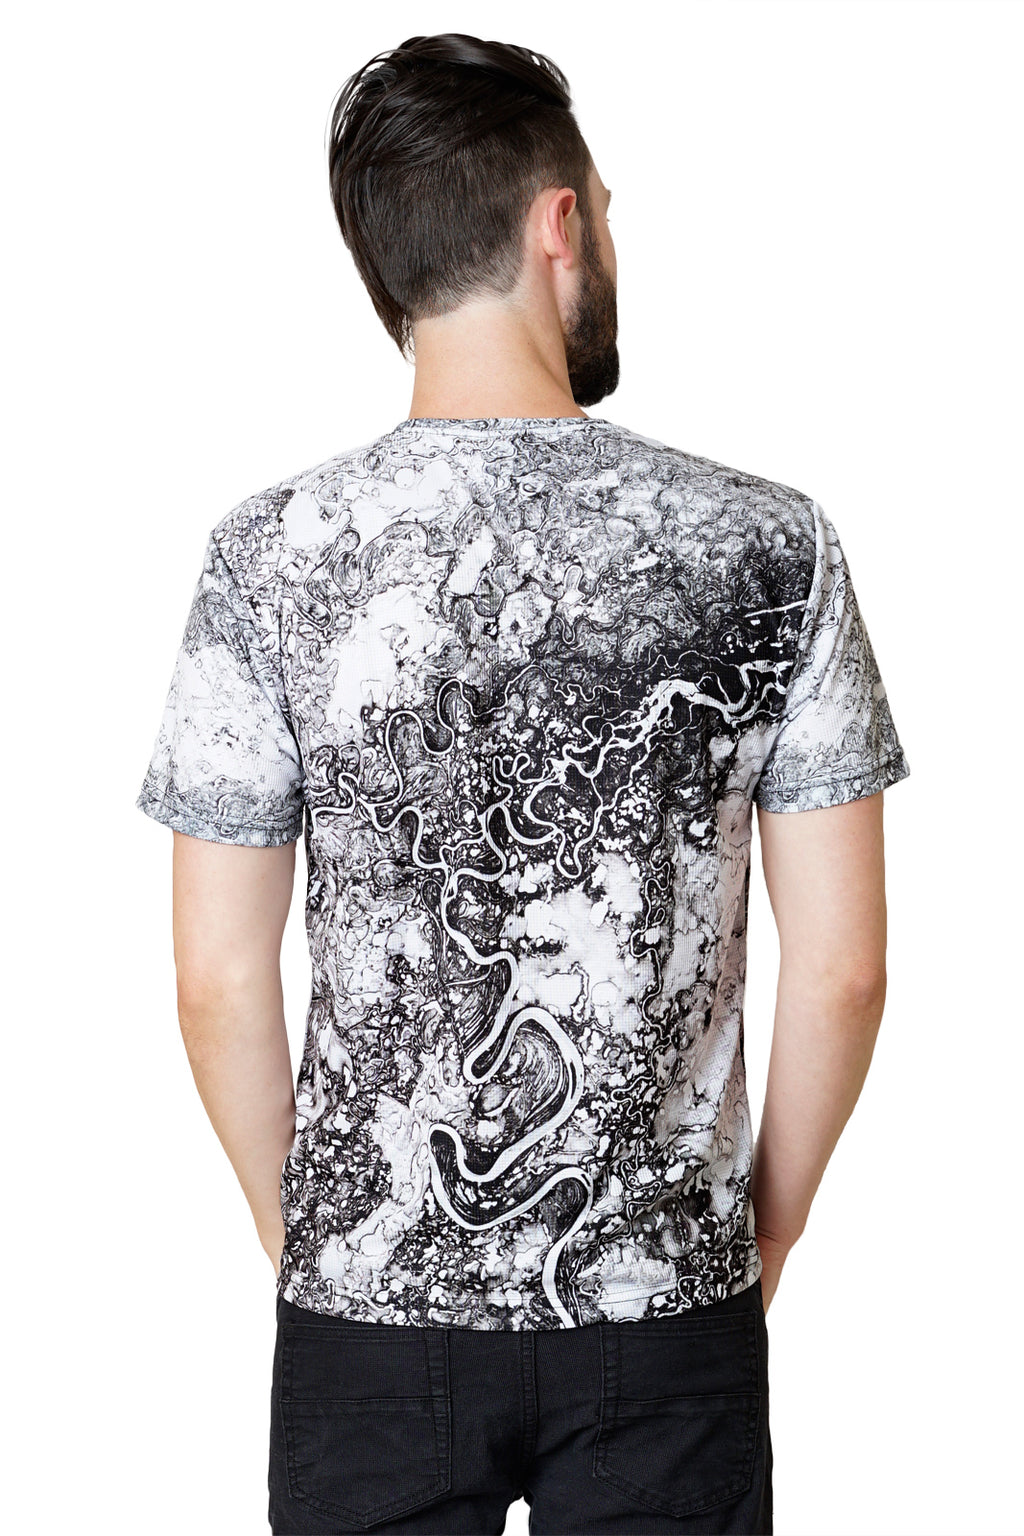 Mens Shortsleeve T-shirt-Nature Inspired Clothing-Earth Images Clothing-Mayn River-Back View